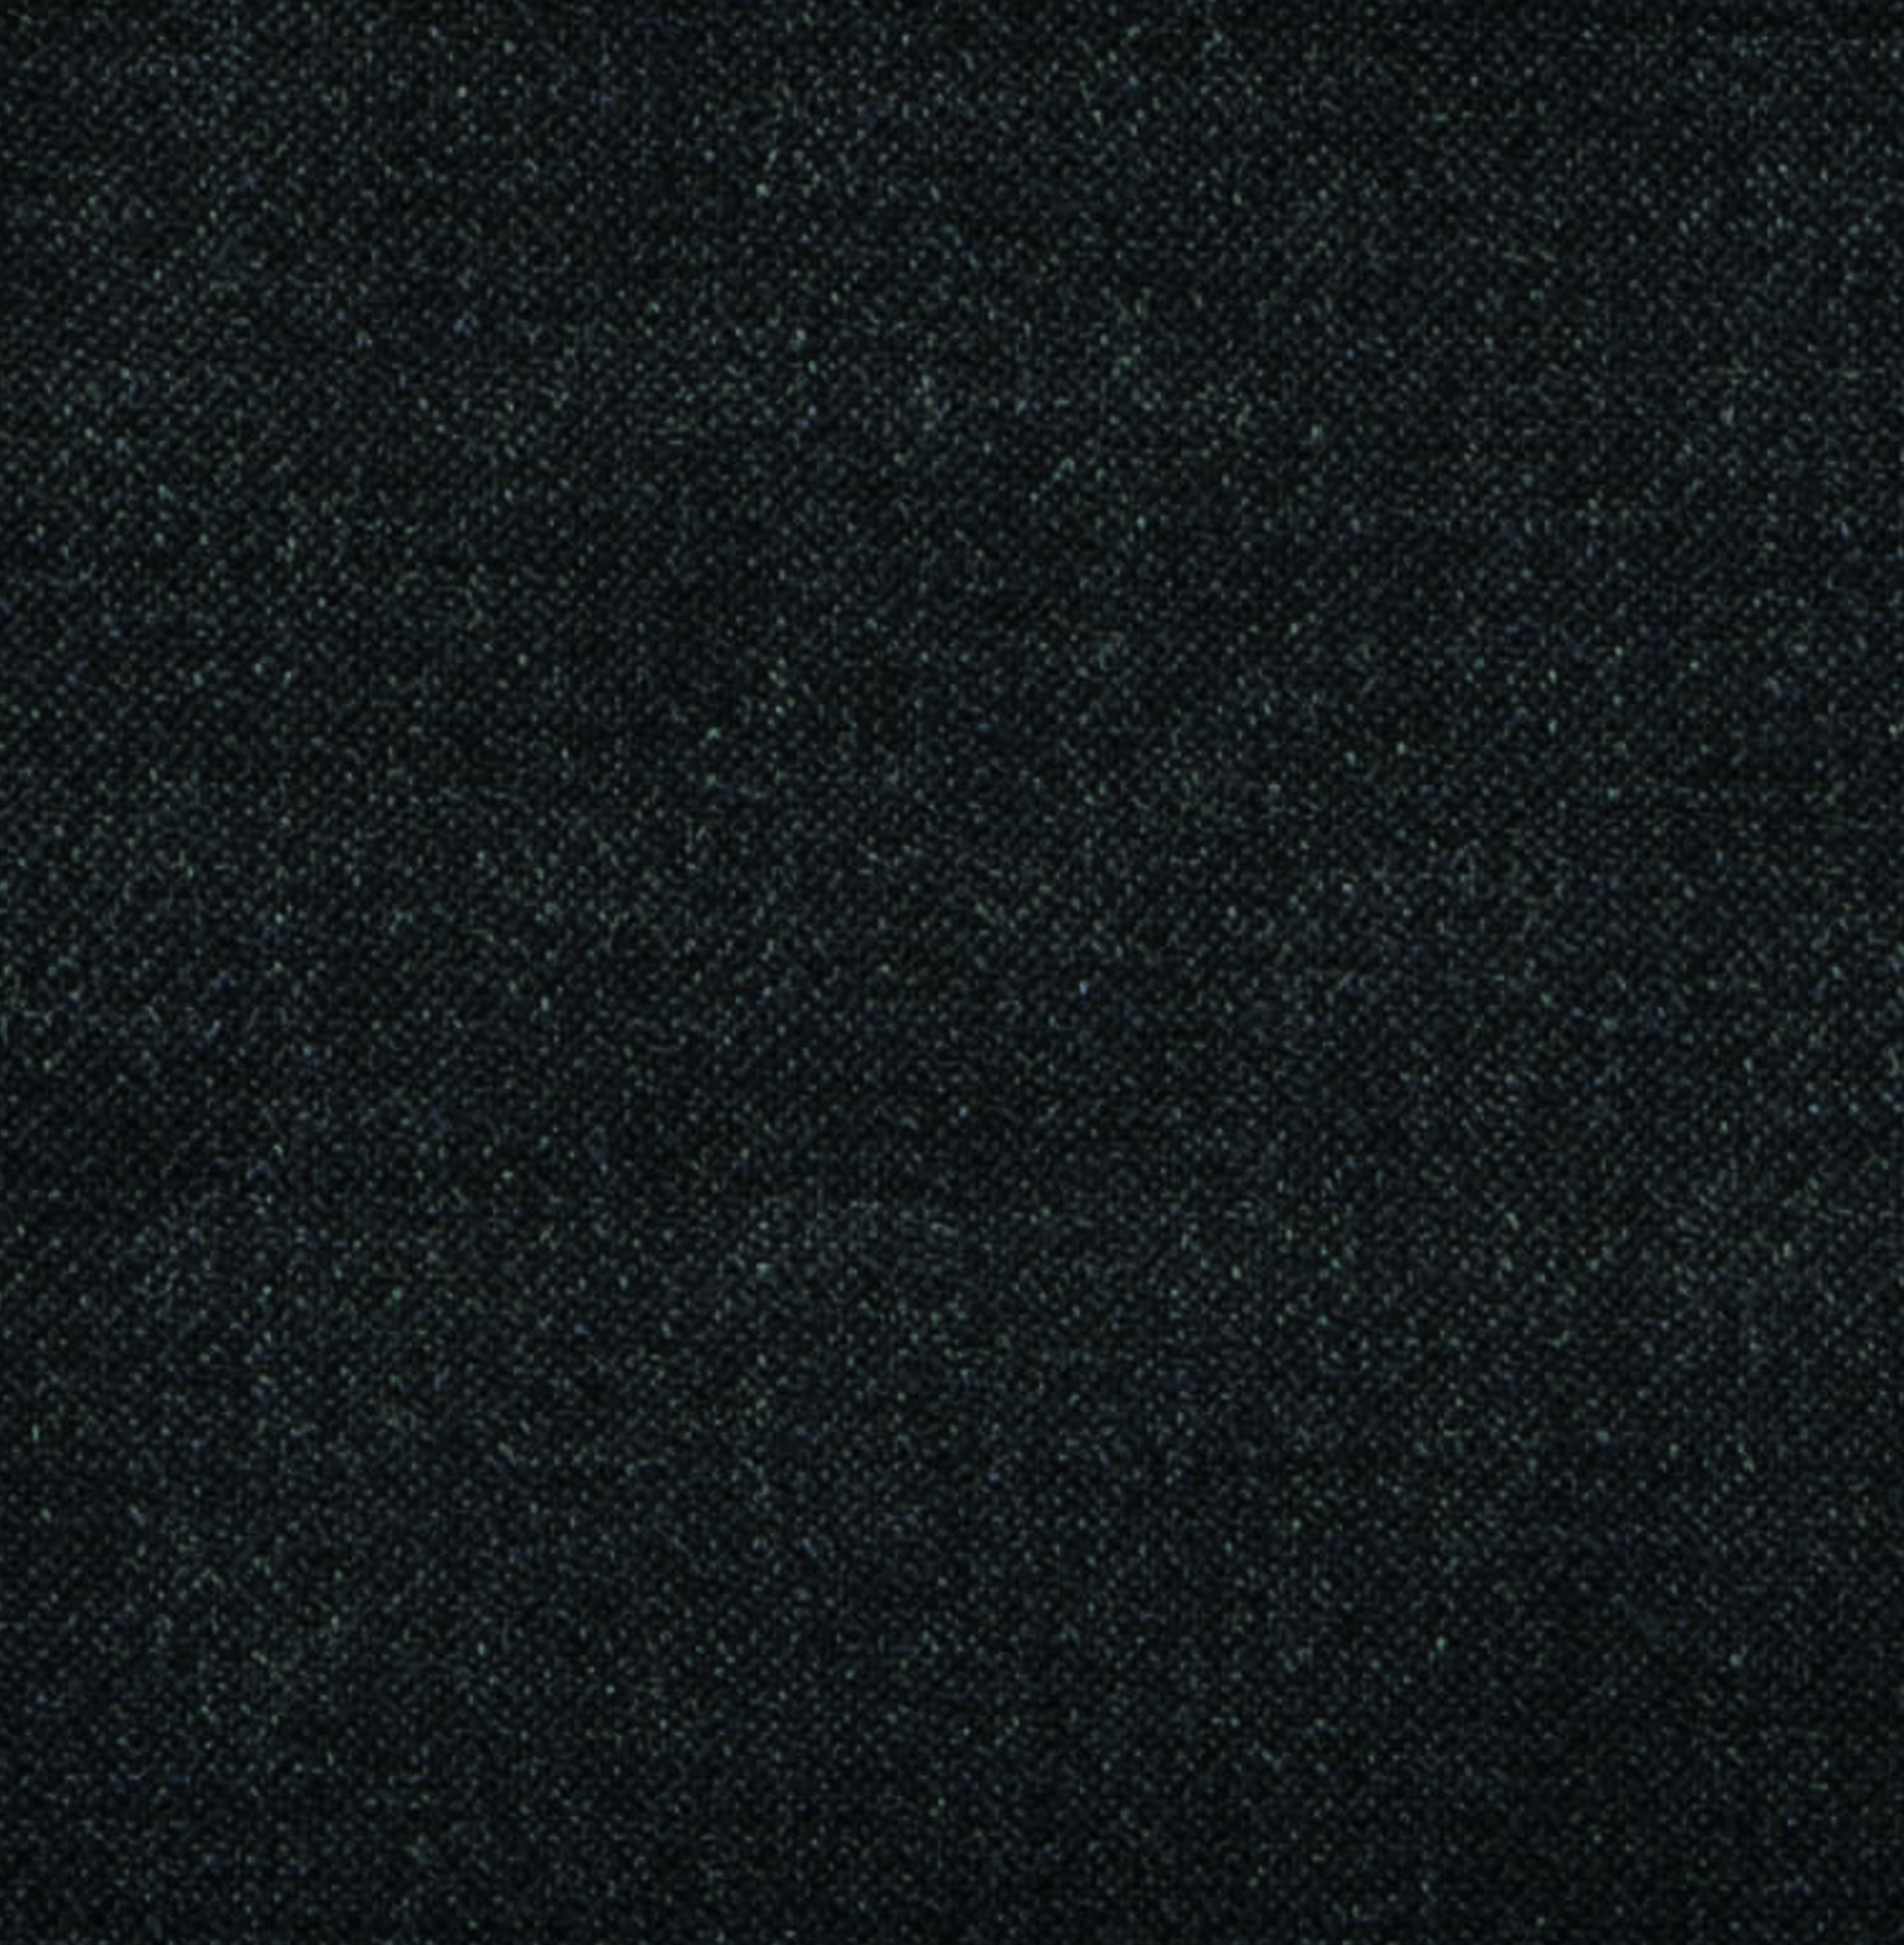 Buy tailor made shirts online - Luxurious Pure New Wool - Charcoal with lining